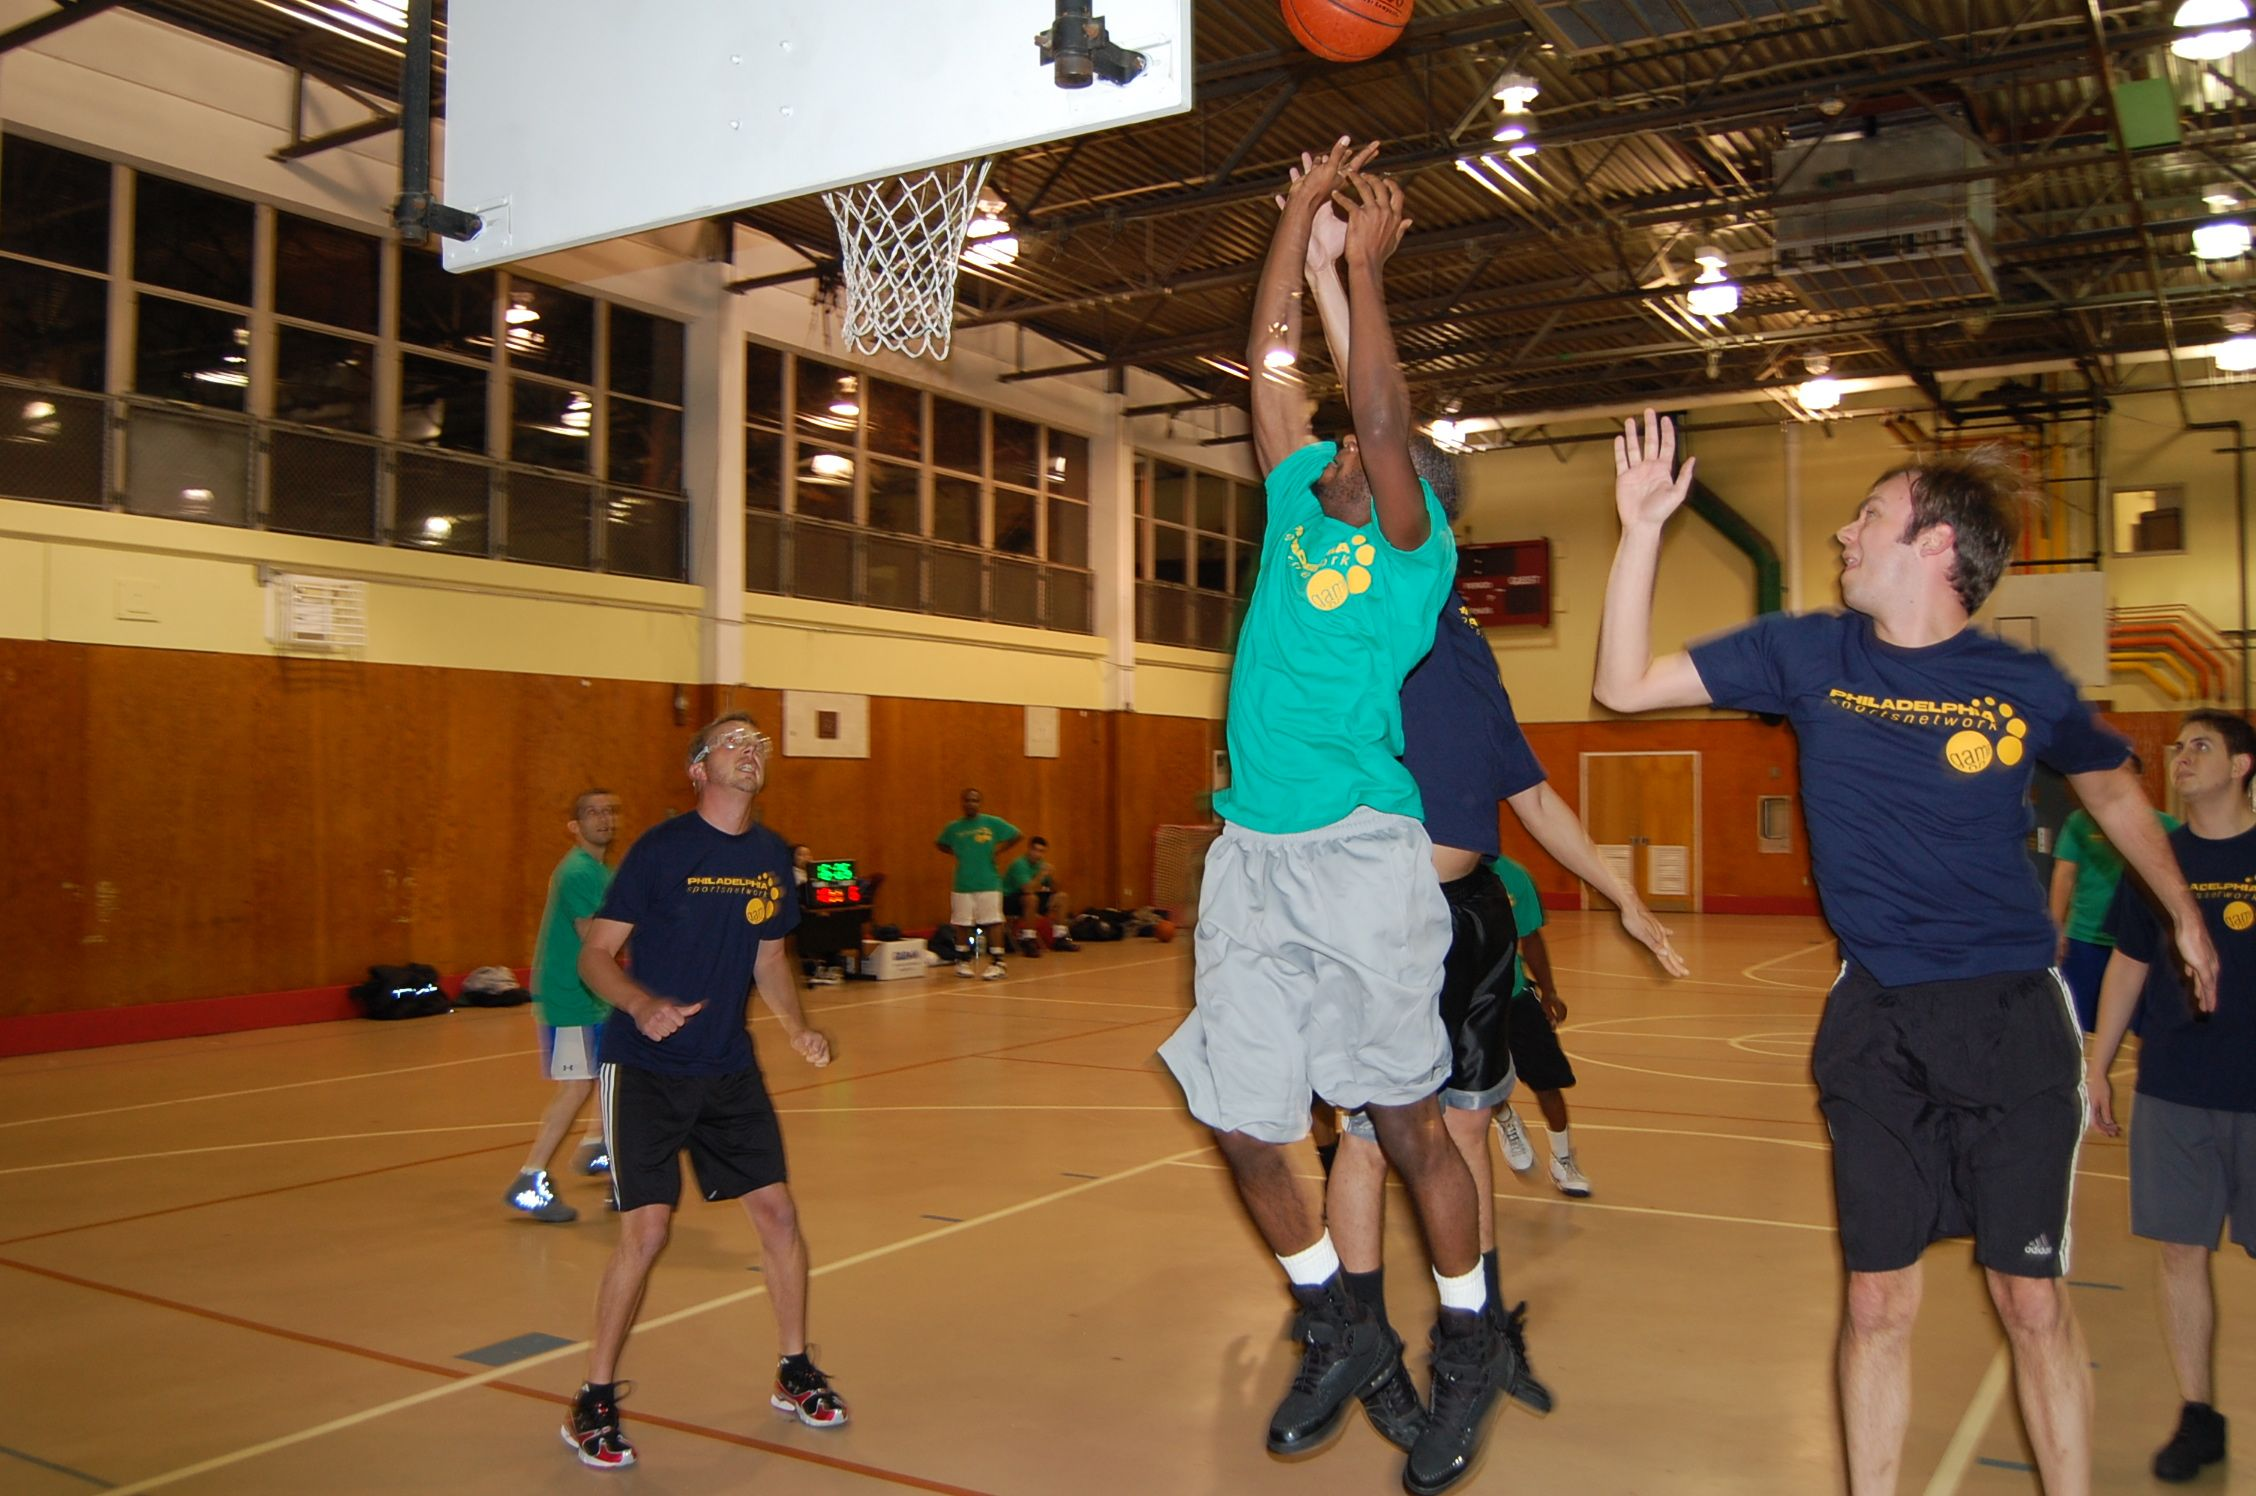 The 10 Commandments of Playing Pickup Basketball